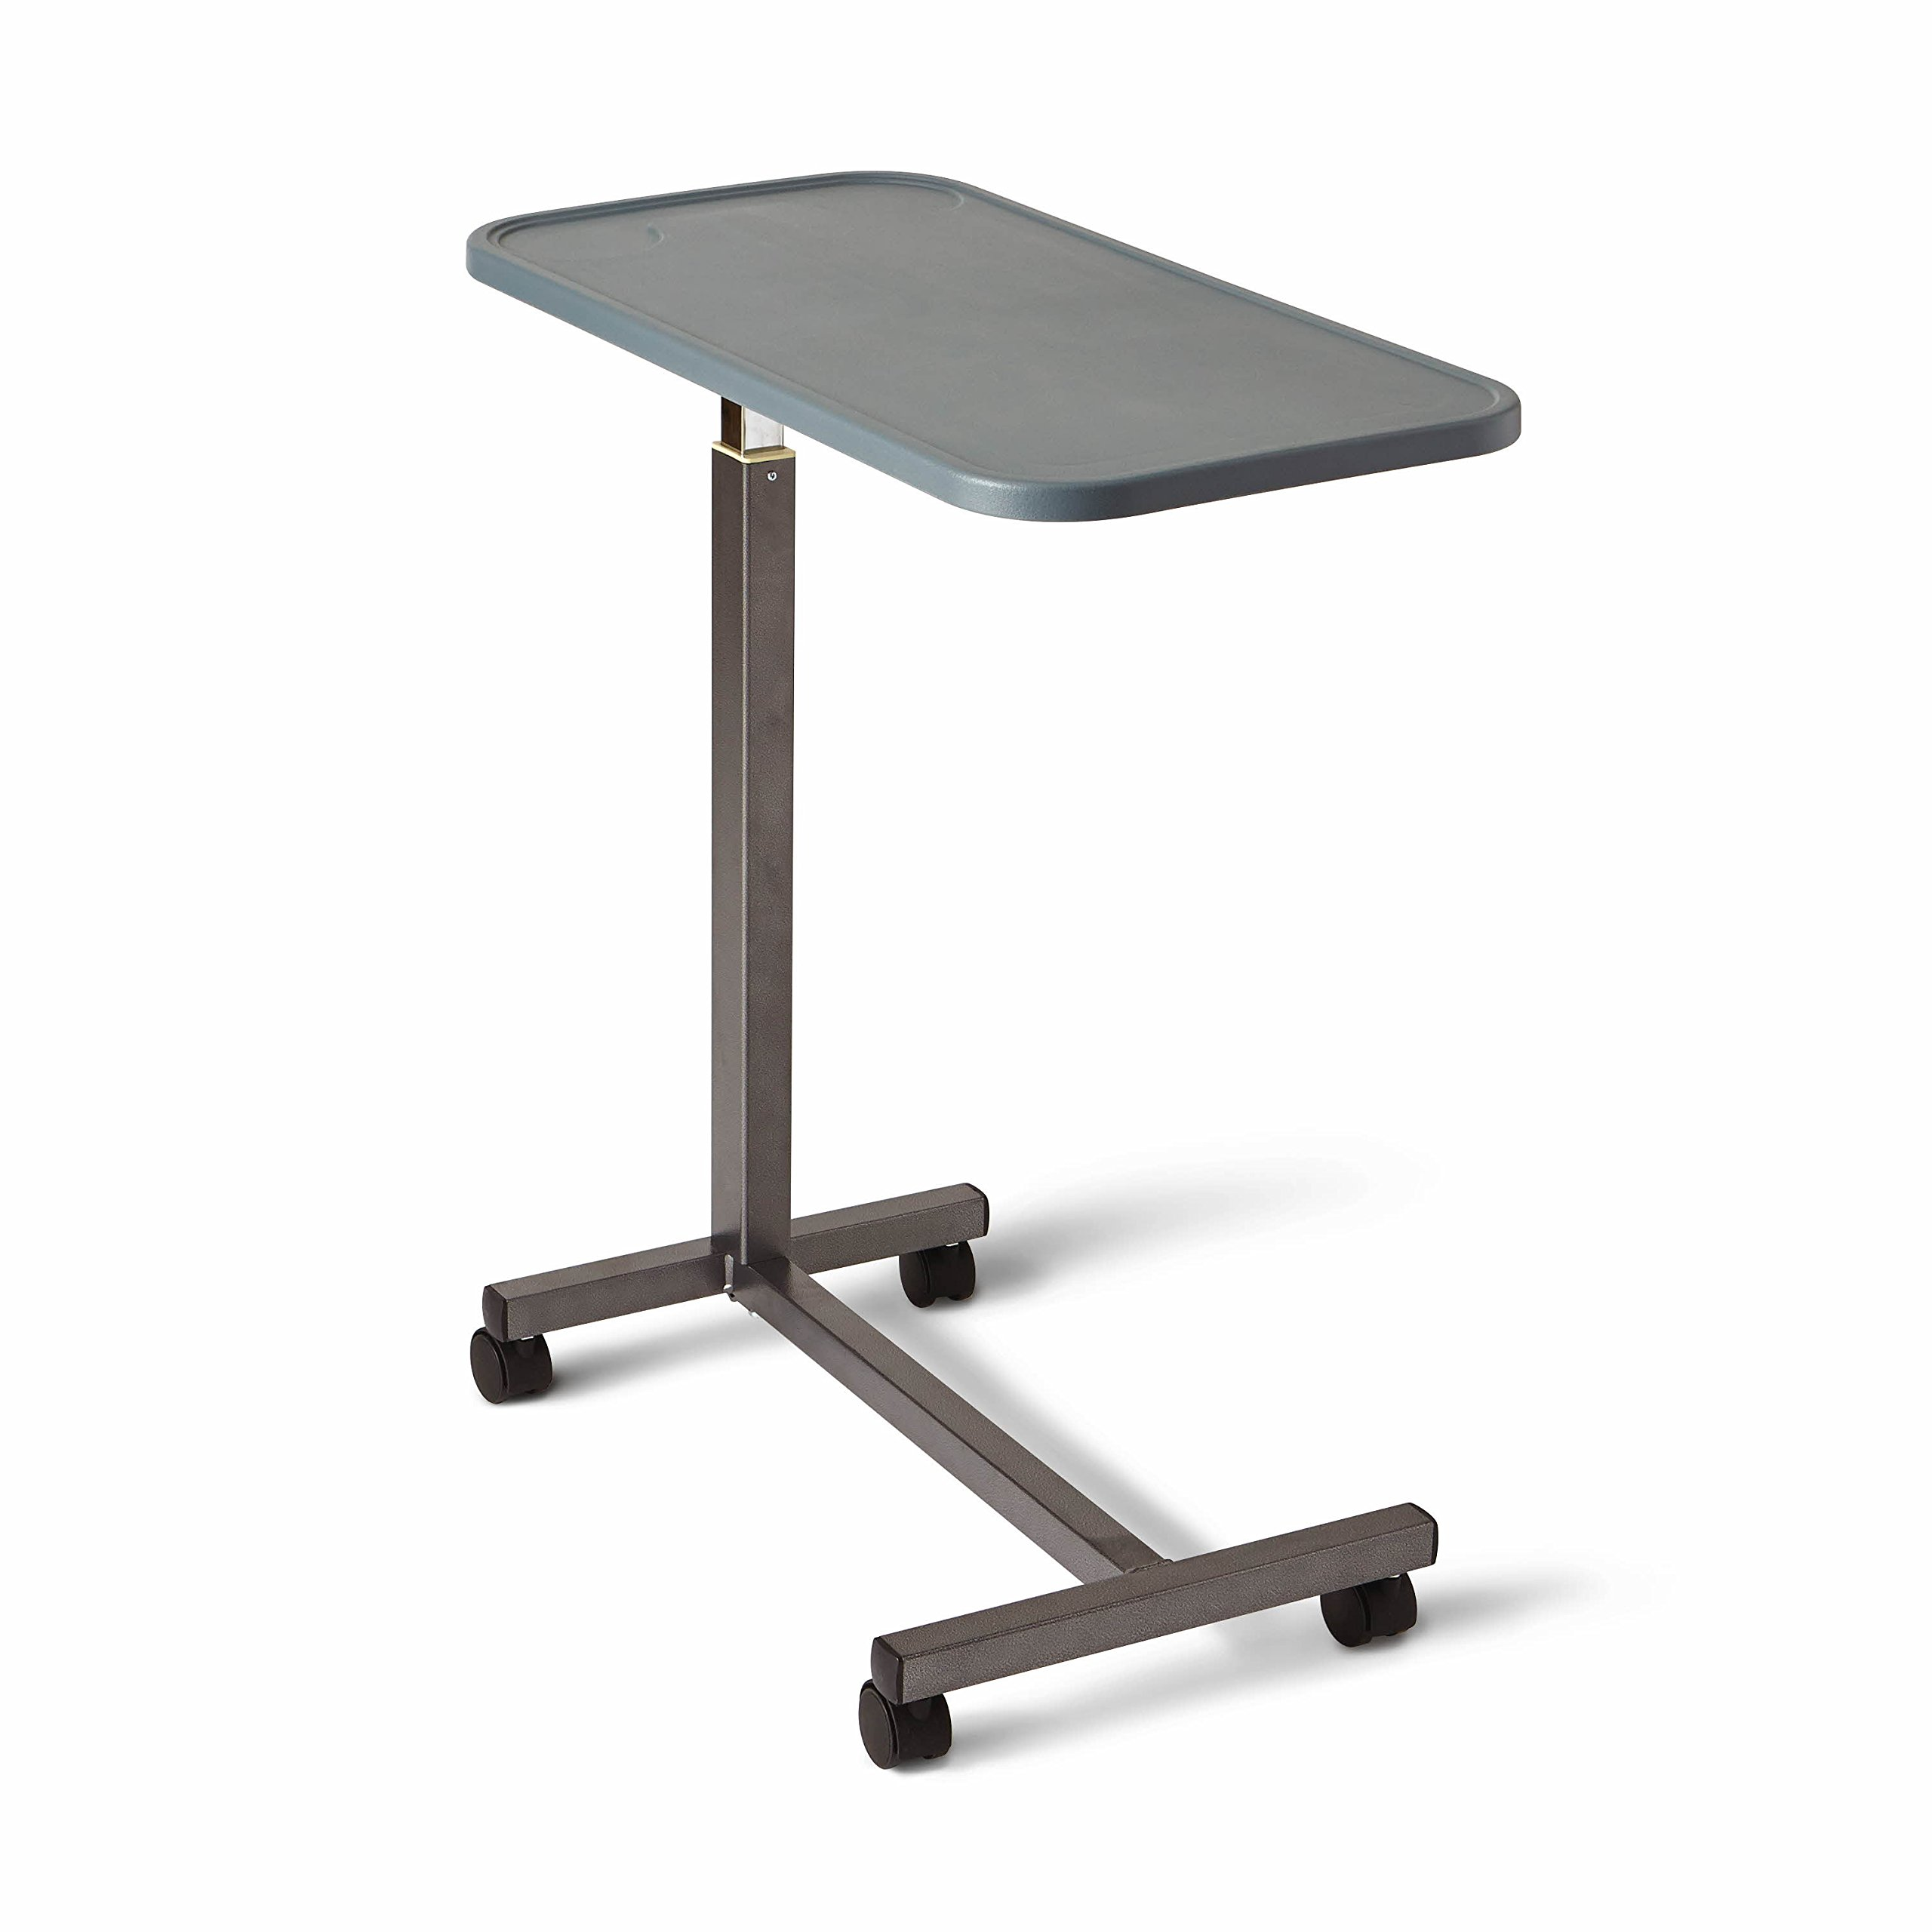 Medline Adjustable Overbed Bedside Table with Wheels, Great for Hospital Use or at Home as Bed Tray, Composite Table Top by Medline